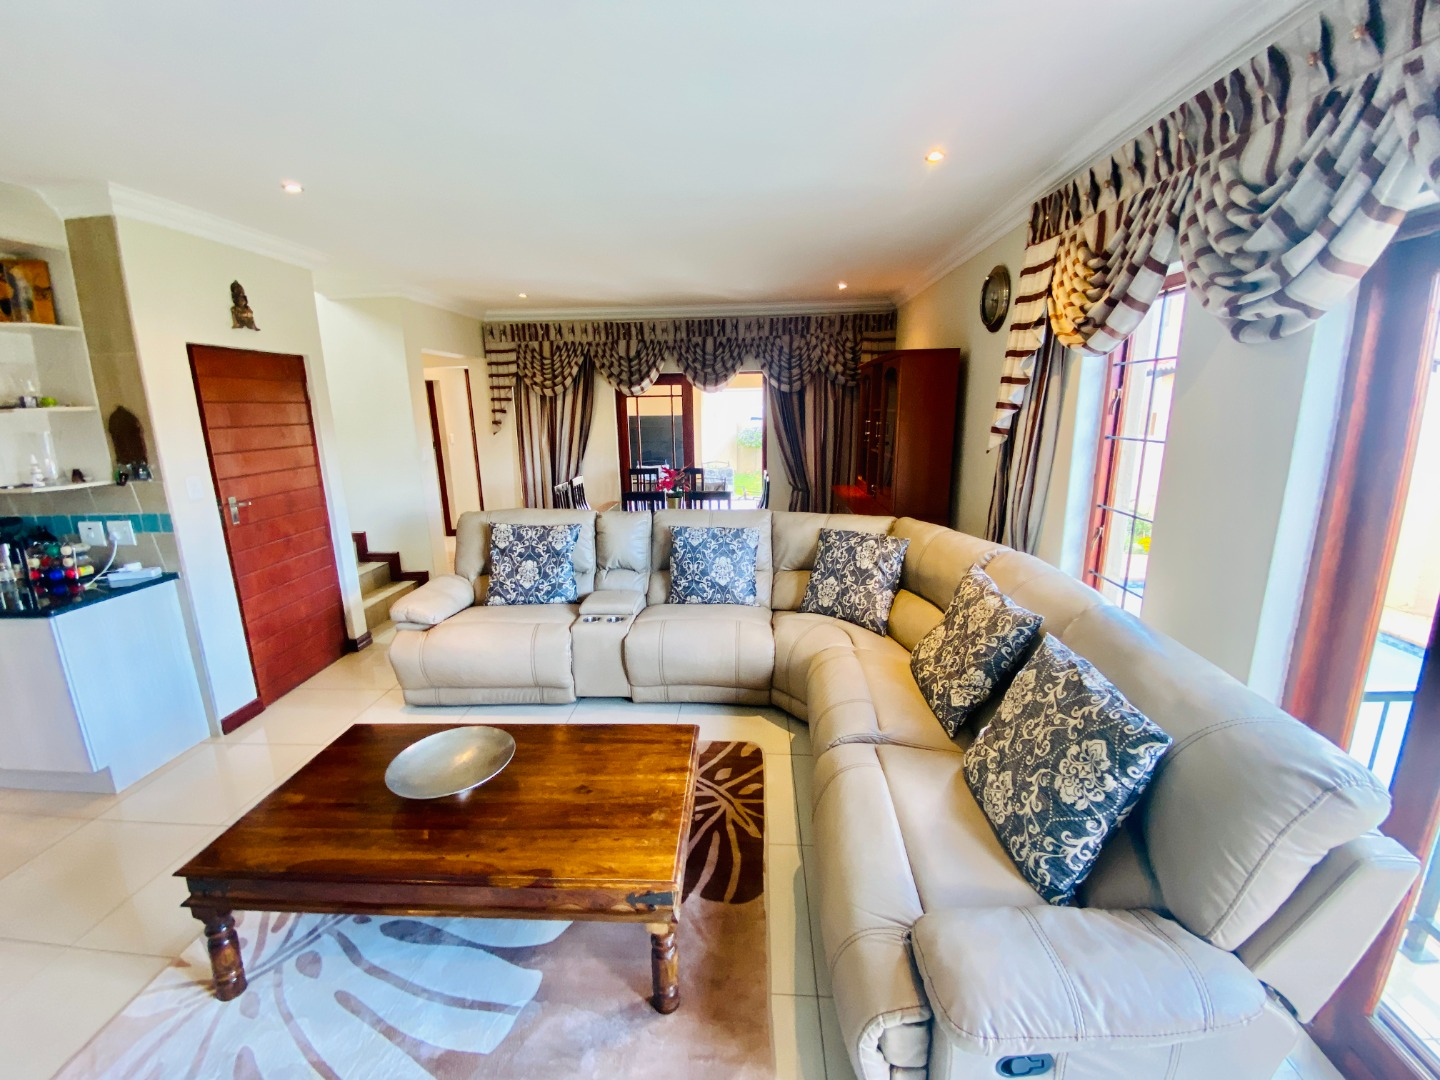 4 Bedroom House For Sale in Thatchfield Hills